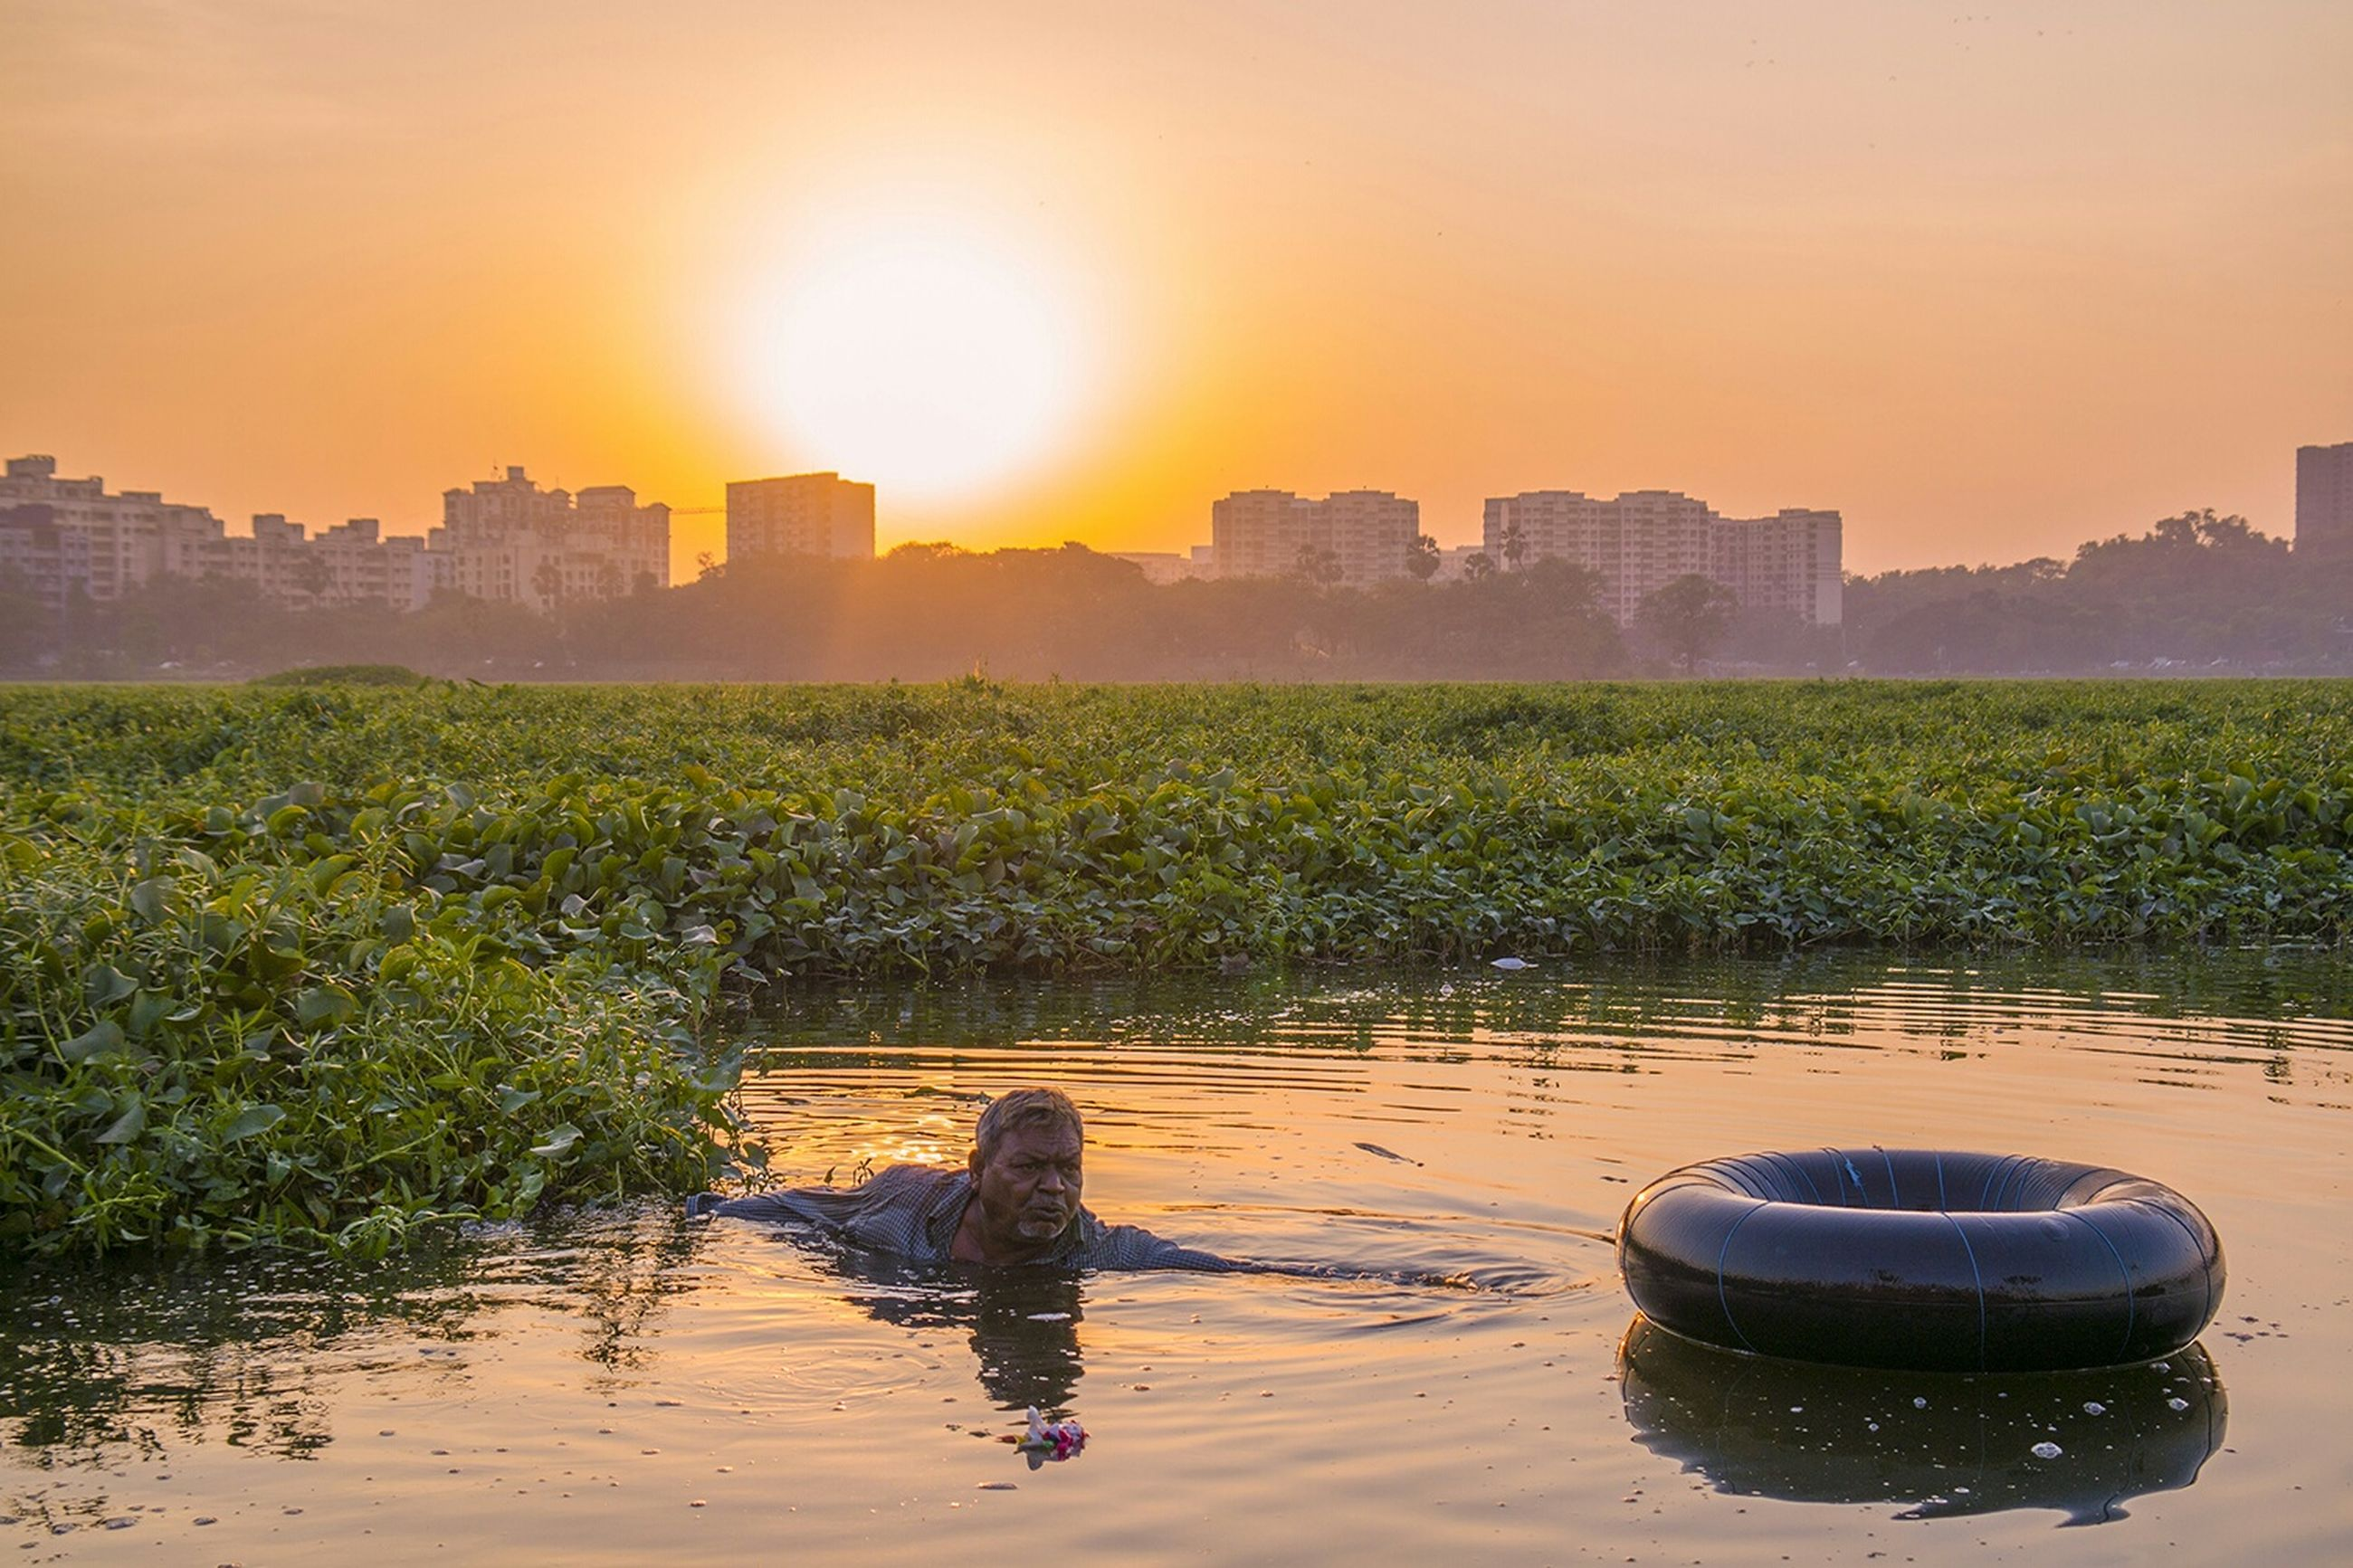 sunset, sun, water, architecture, built structure, building exterior, reflection, sunlight, grass, sky, nature, tranquil scene, tranquility, growth, waterfront, beauty in nature, scenics, river, orange color, plant